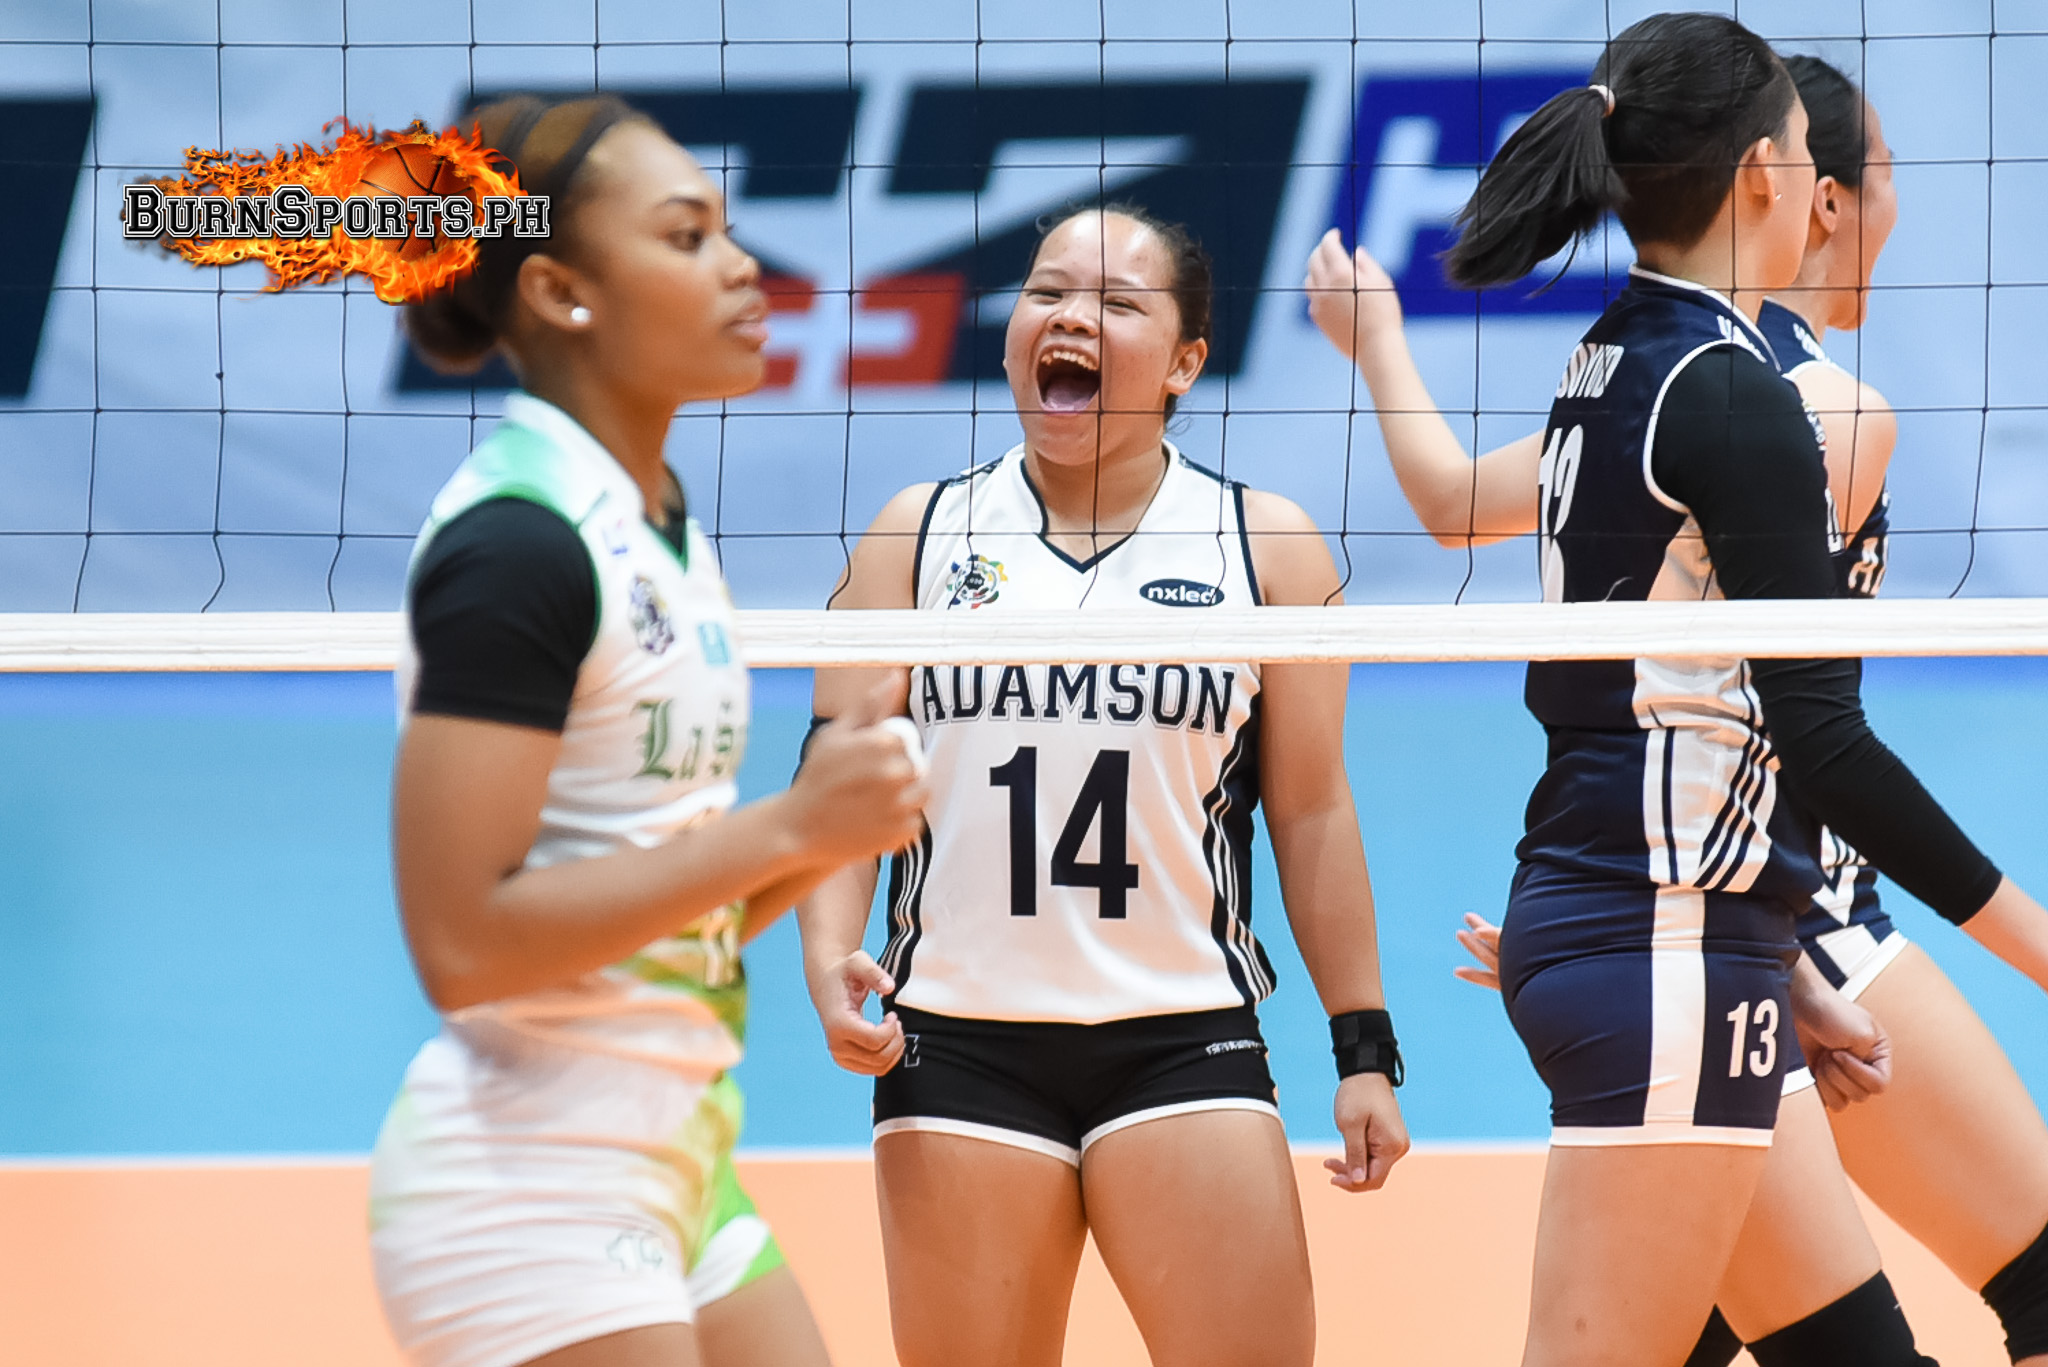 Lady Spikers score second straight victory